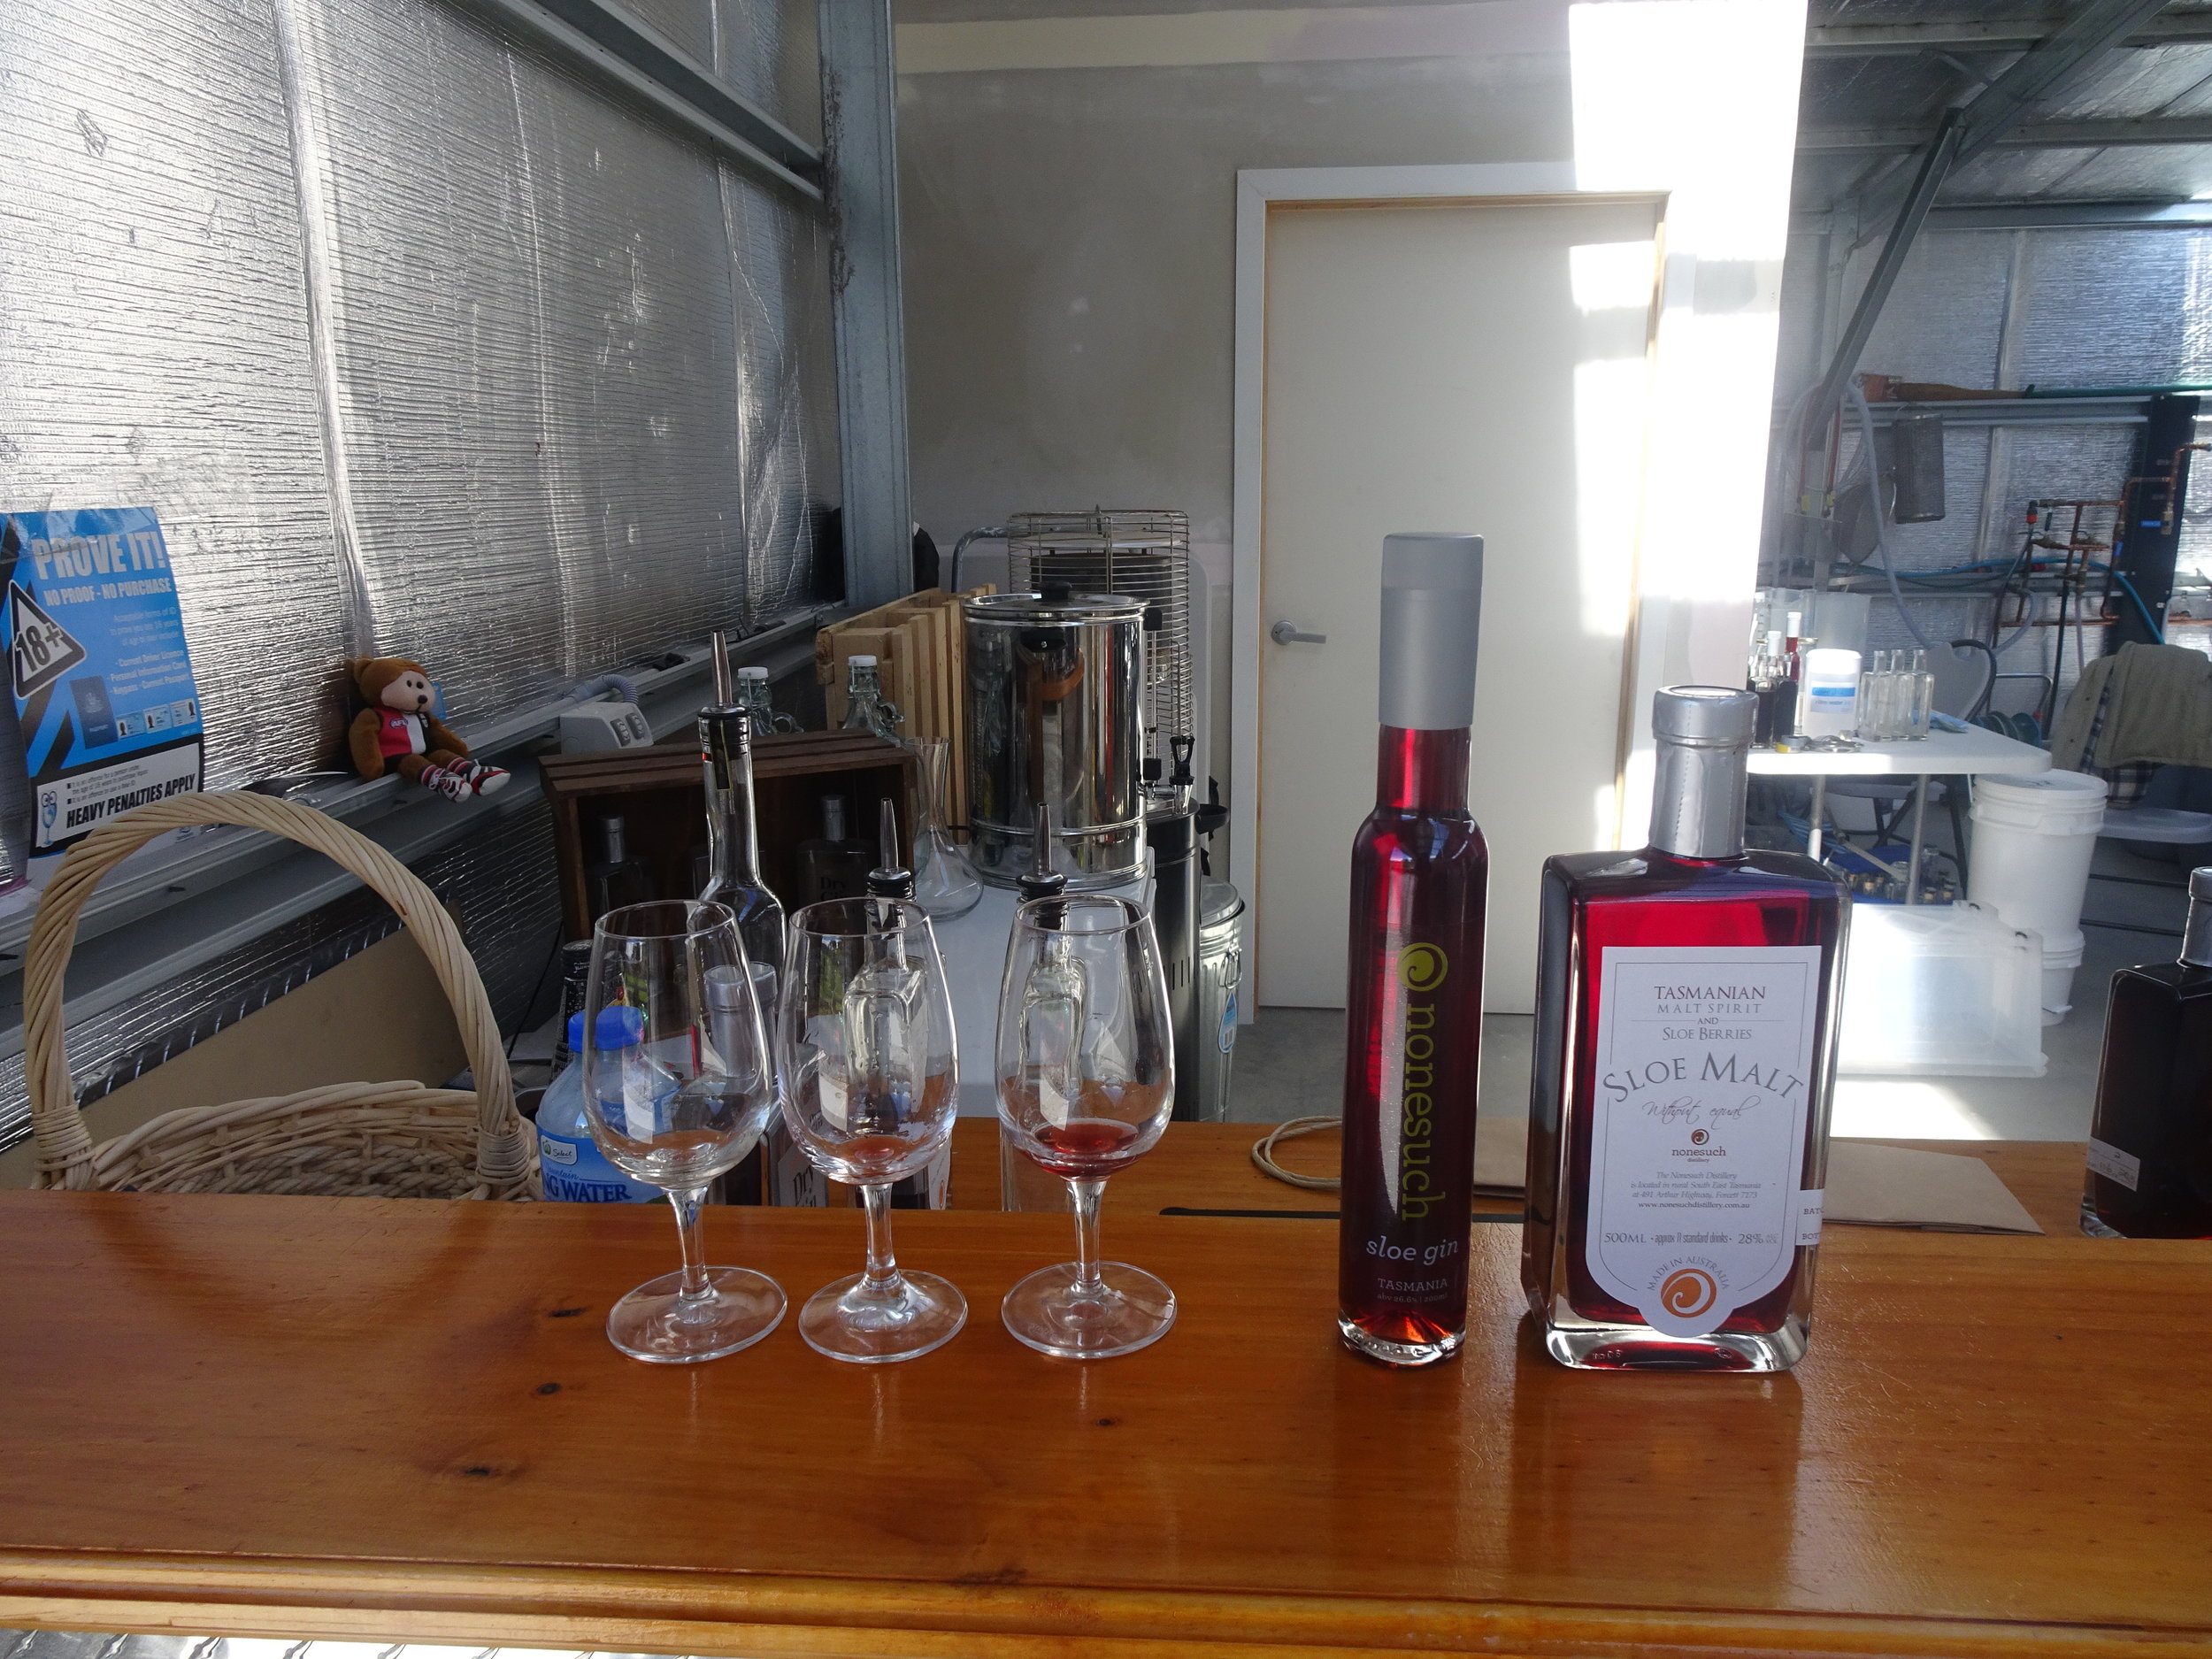 Nonesuch sloe gin and malt